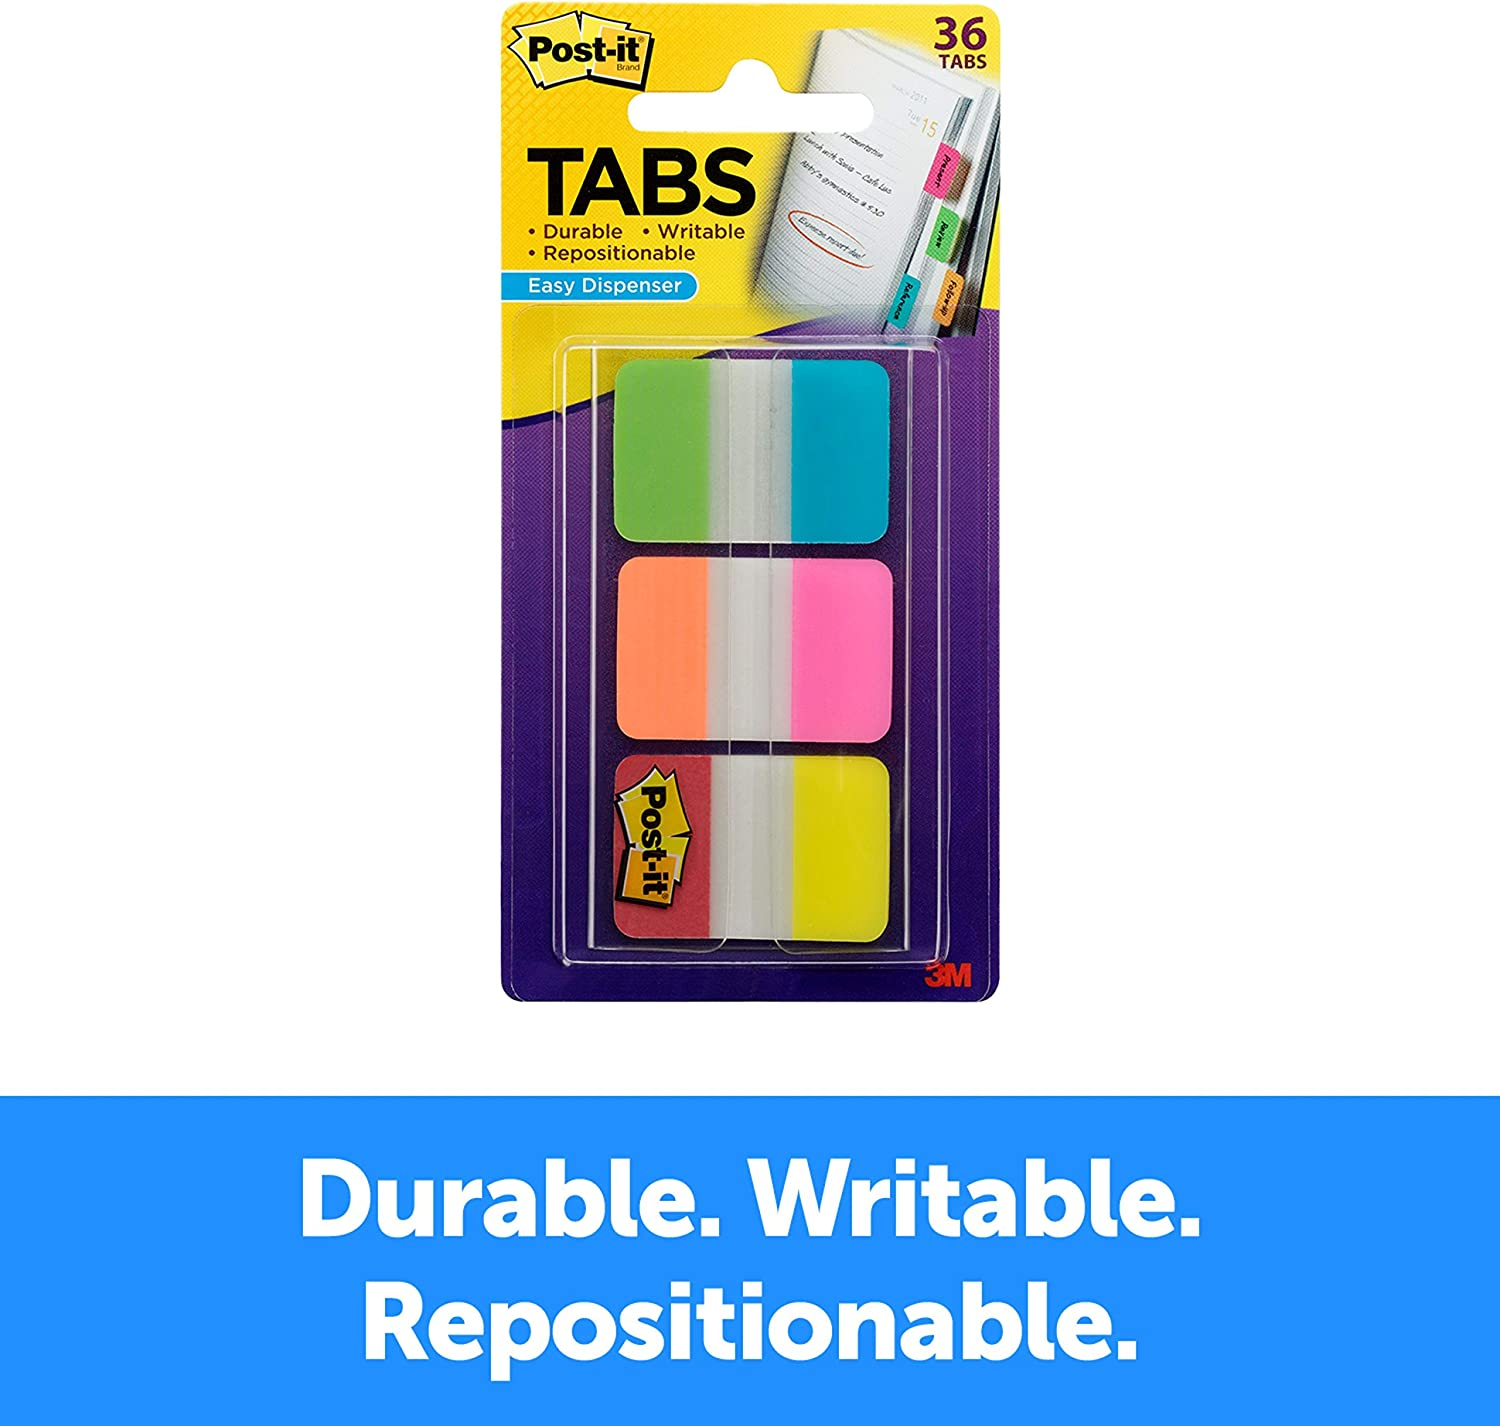 Amazon.com : Post-it Tabs, 1 in. Solid, Aqua, Yellow, Pink, Red, Green,  Orange, Durable, Writable, Repositionable, Sticks Securely, Removes  Cleanly, 6/Color, 36/Dispenser, (686-ALOPRYT) : Office Products